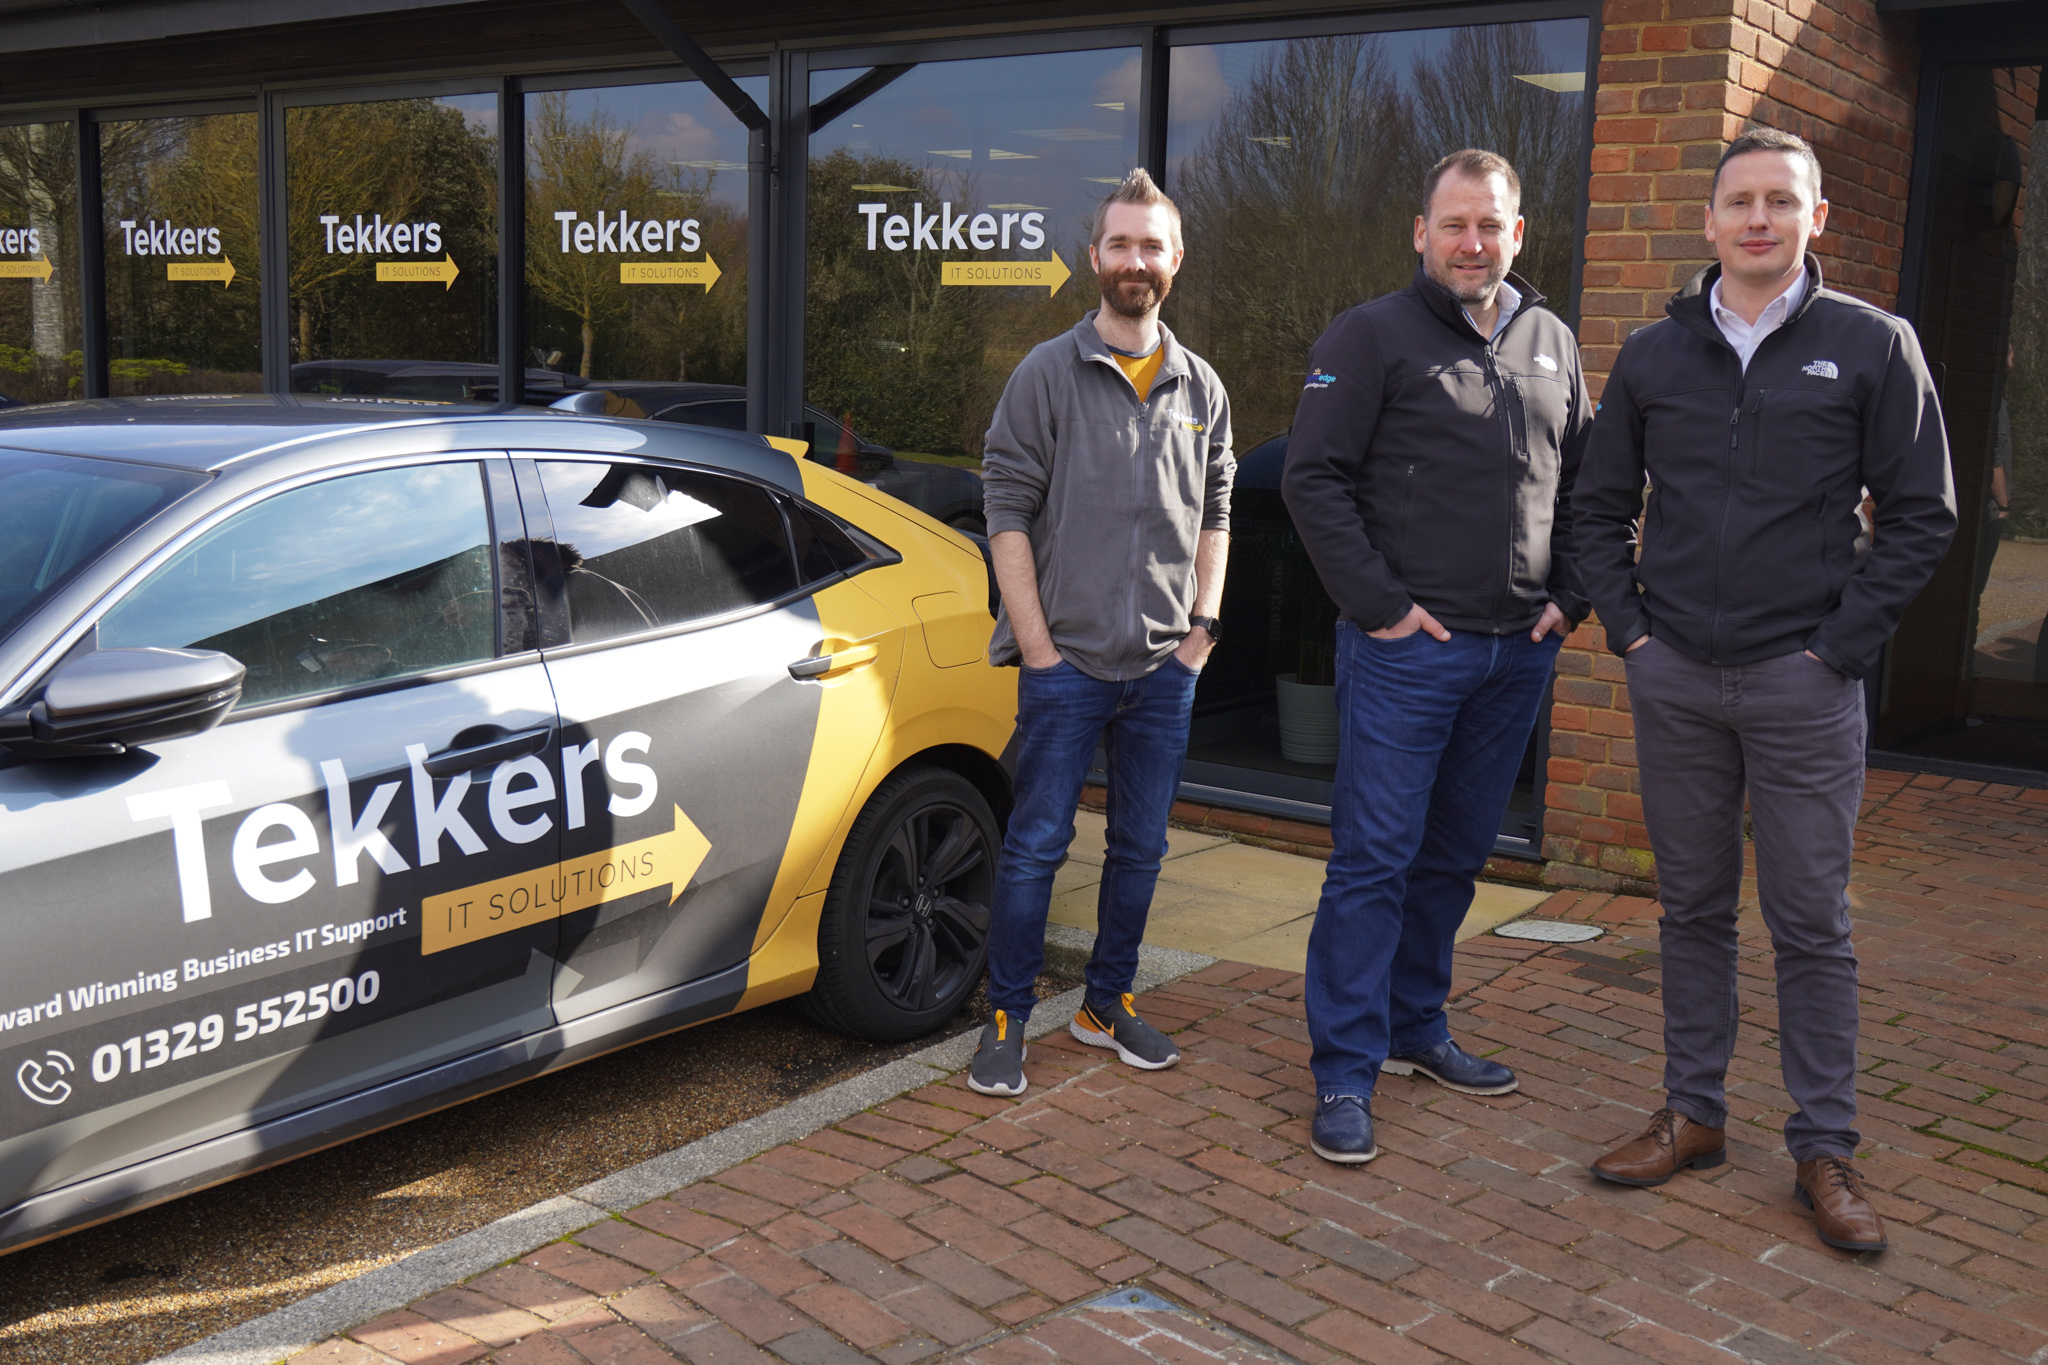 Tekkers IT Solutions founder Pete Matheson, Dynamic Edge CEO Rob Hamilton, and Stuart Winterburn, the Aberdeen-based managing director of Dynamic Edge.